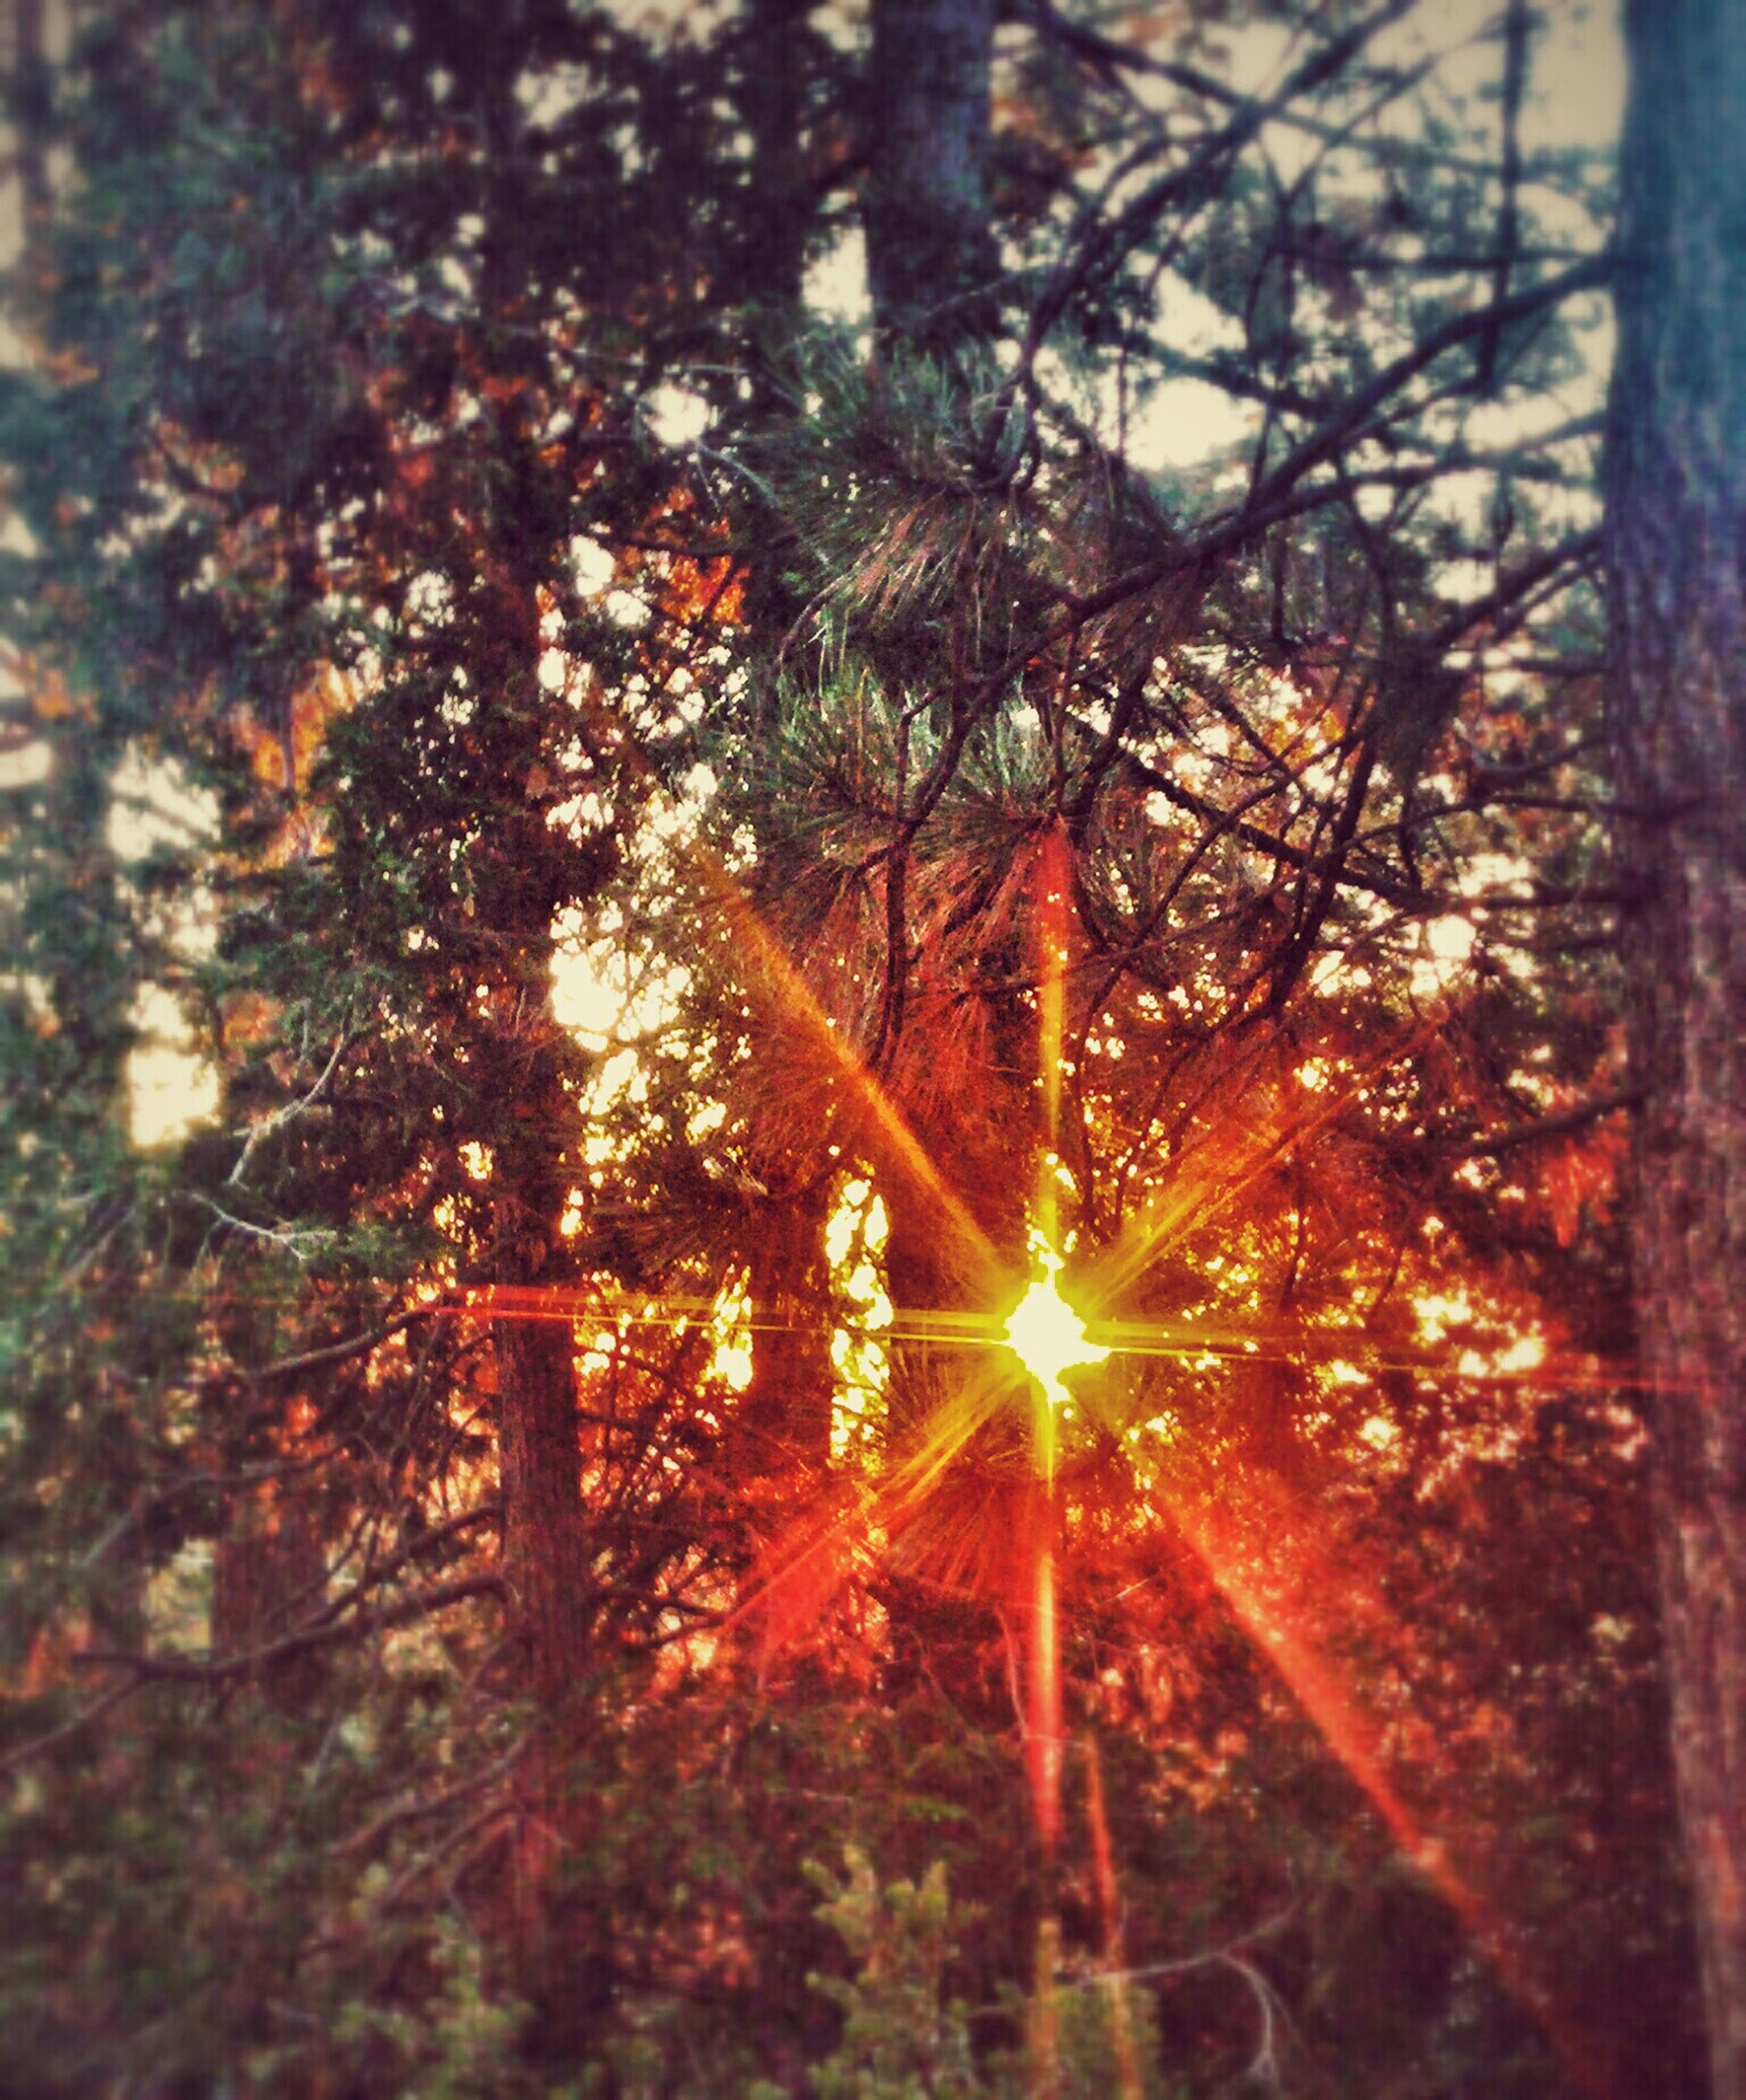 tree, forest, tree trunk, growth, nature, tranquility, sun, sunlight, branch, lens flare, low angle view, outdoors, sunbeam, woodland, glowing, no people, wood - material, beauty in nature, flame, back lit